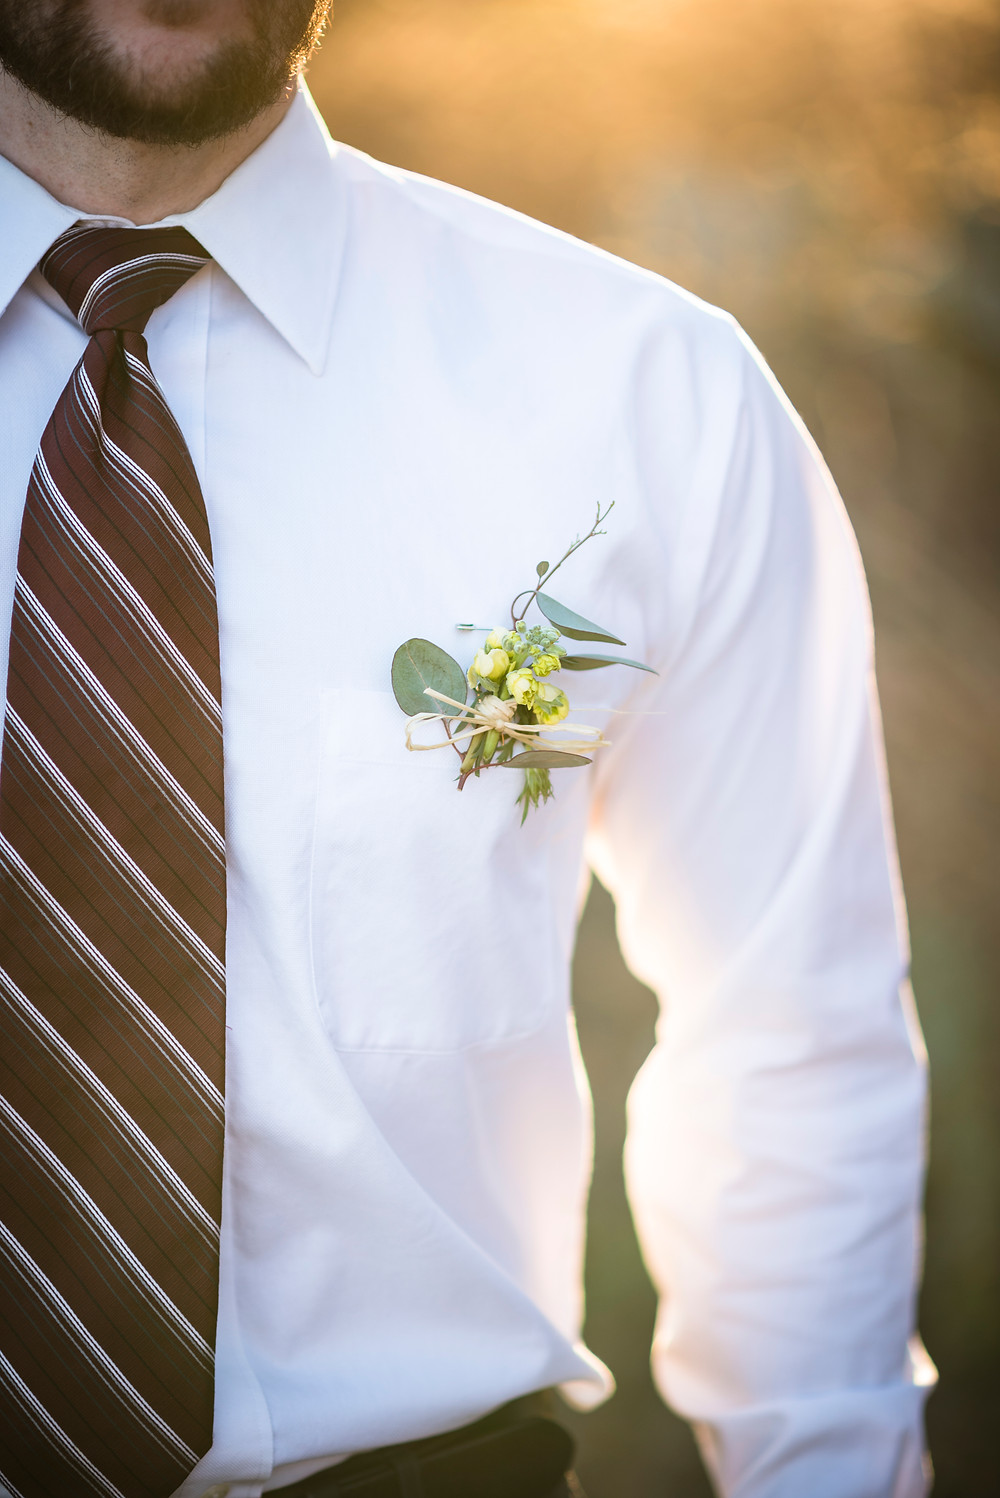 a close up photo of groom's boutonniere and attire details during elopement at enchanted rock